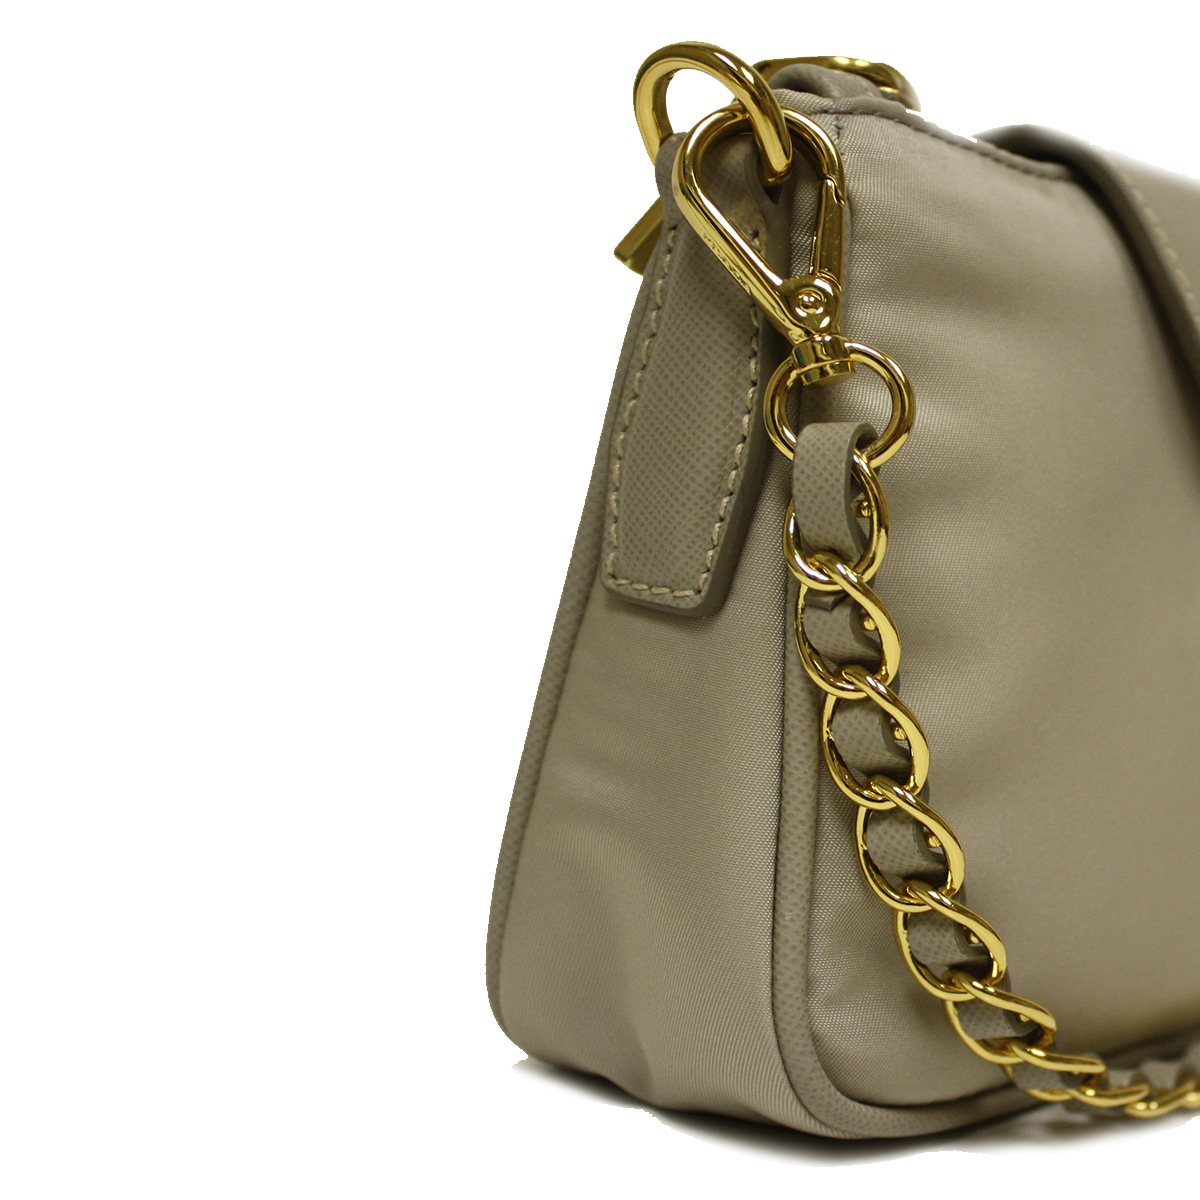 prada bag with chain handle, prada handbags sale usa